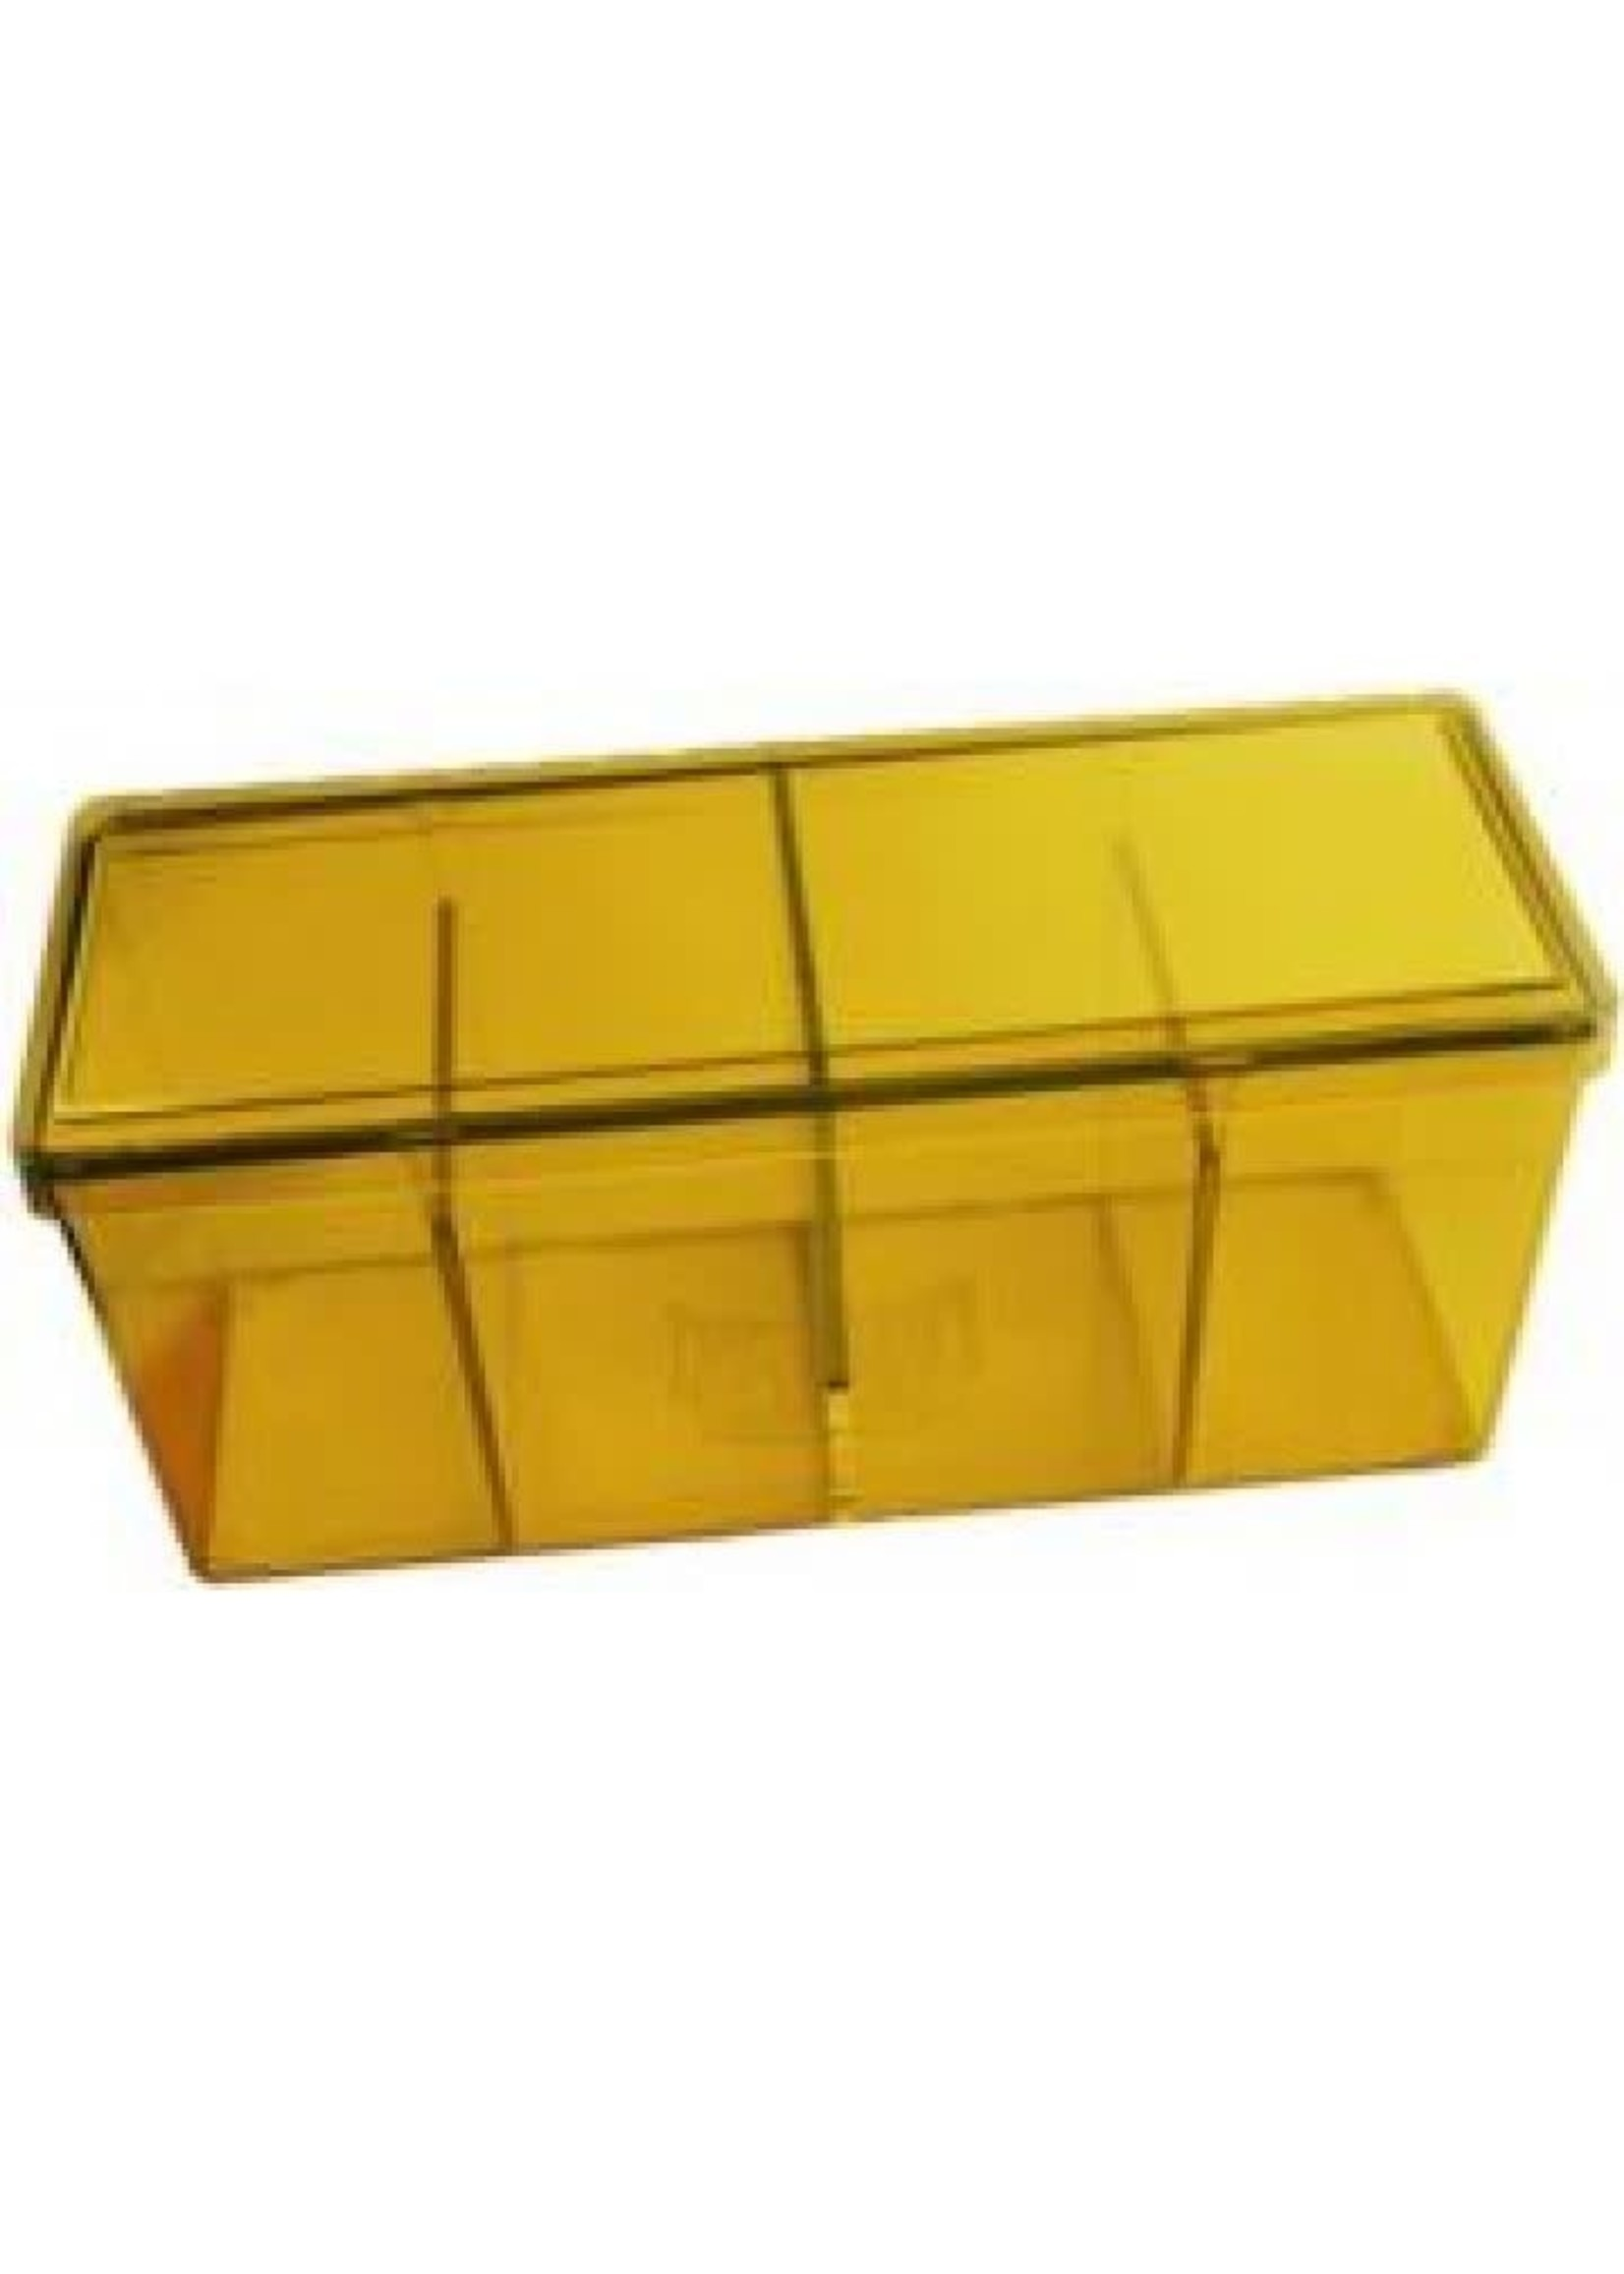 Dragonshield Four Compartment Box Yellow